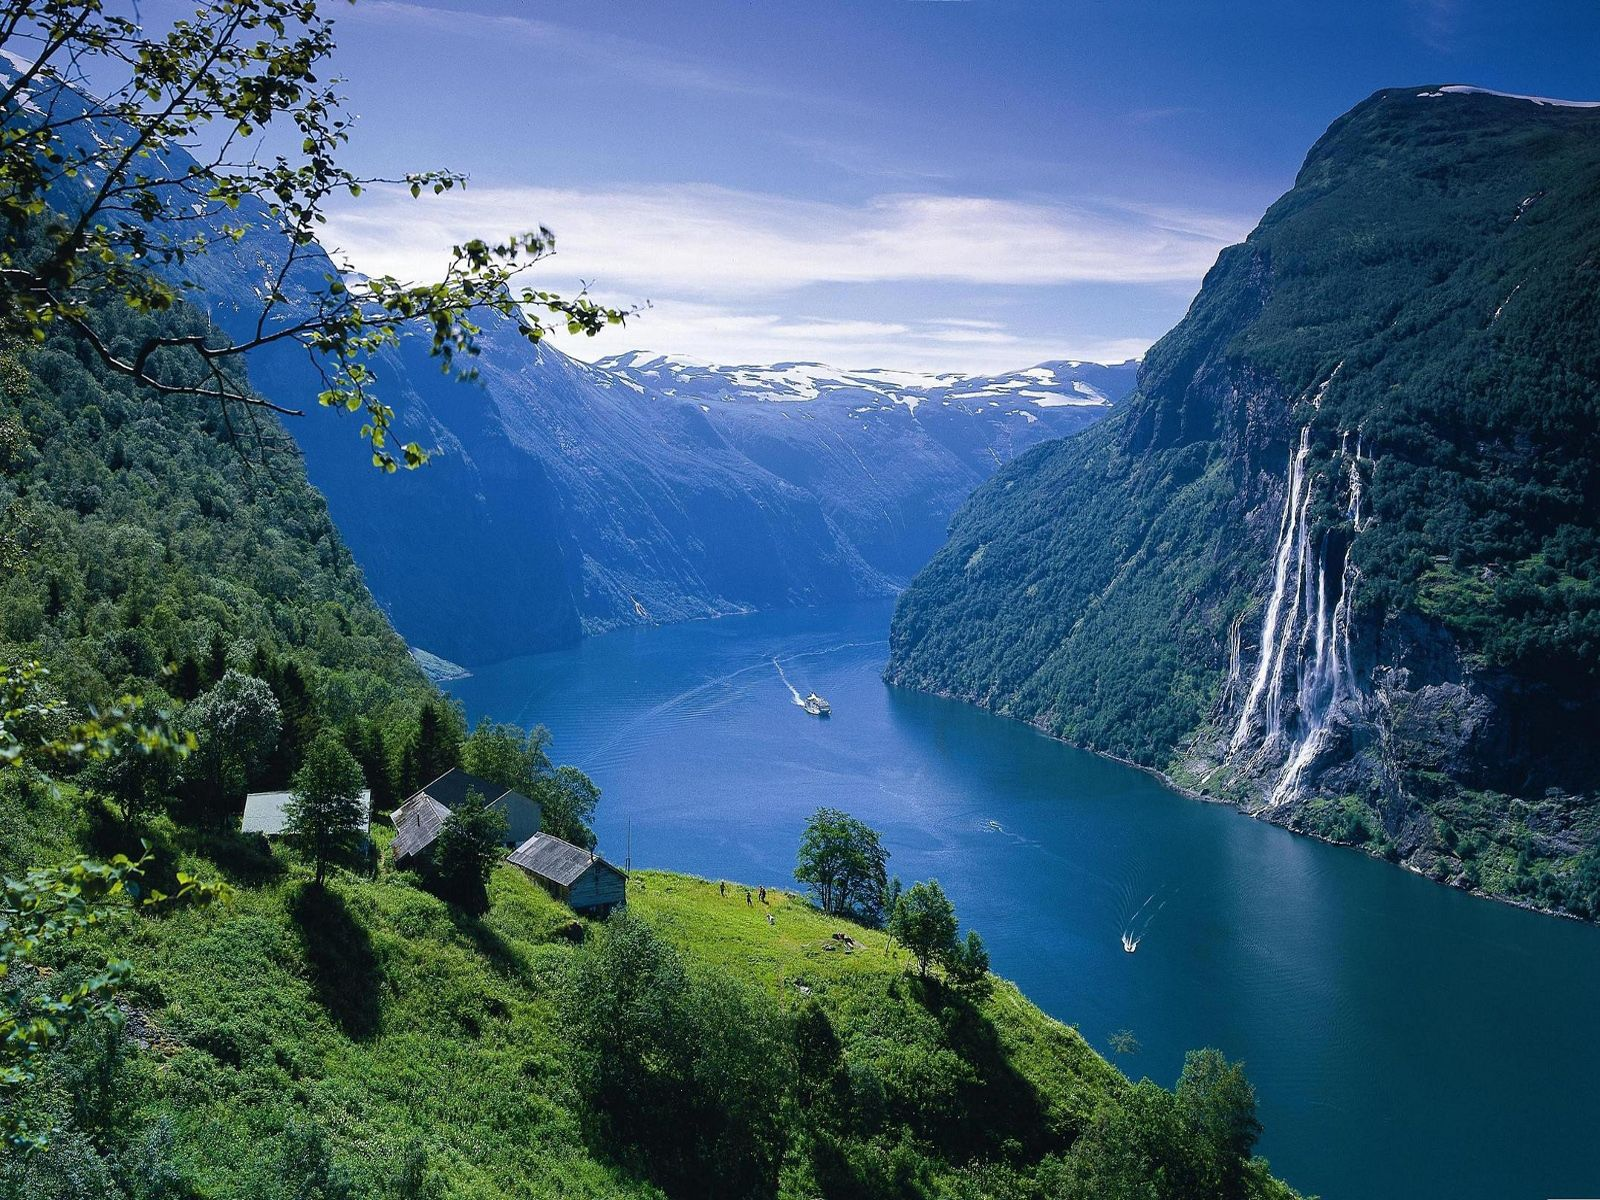 fjords of norway download cottages in the fjords norway wallpaper wallpaper million